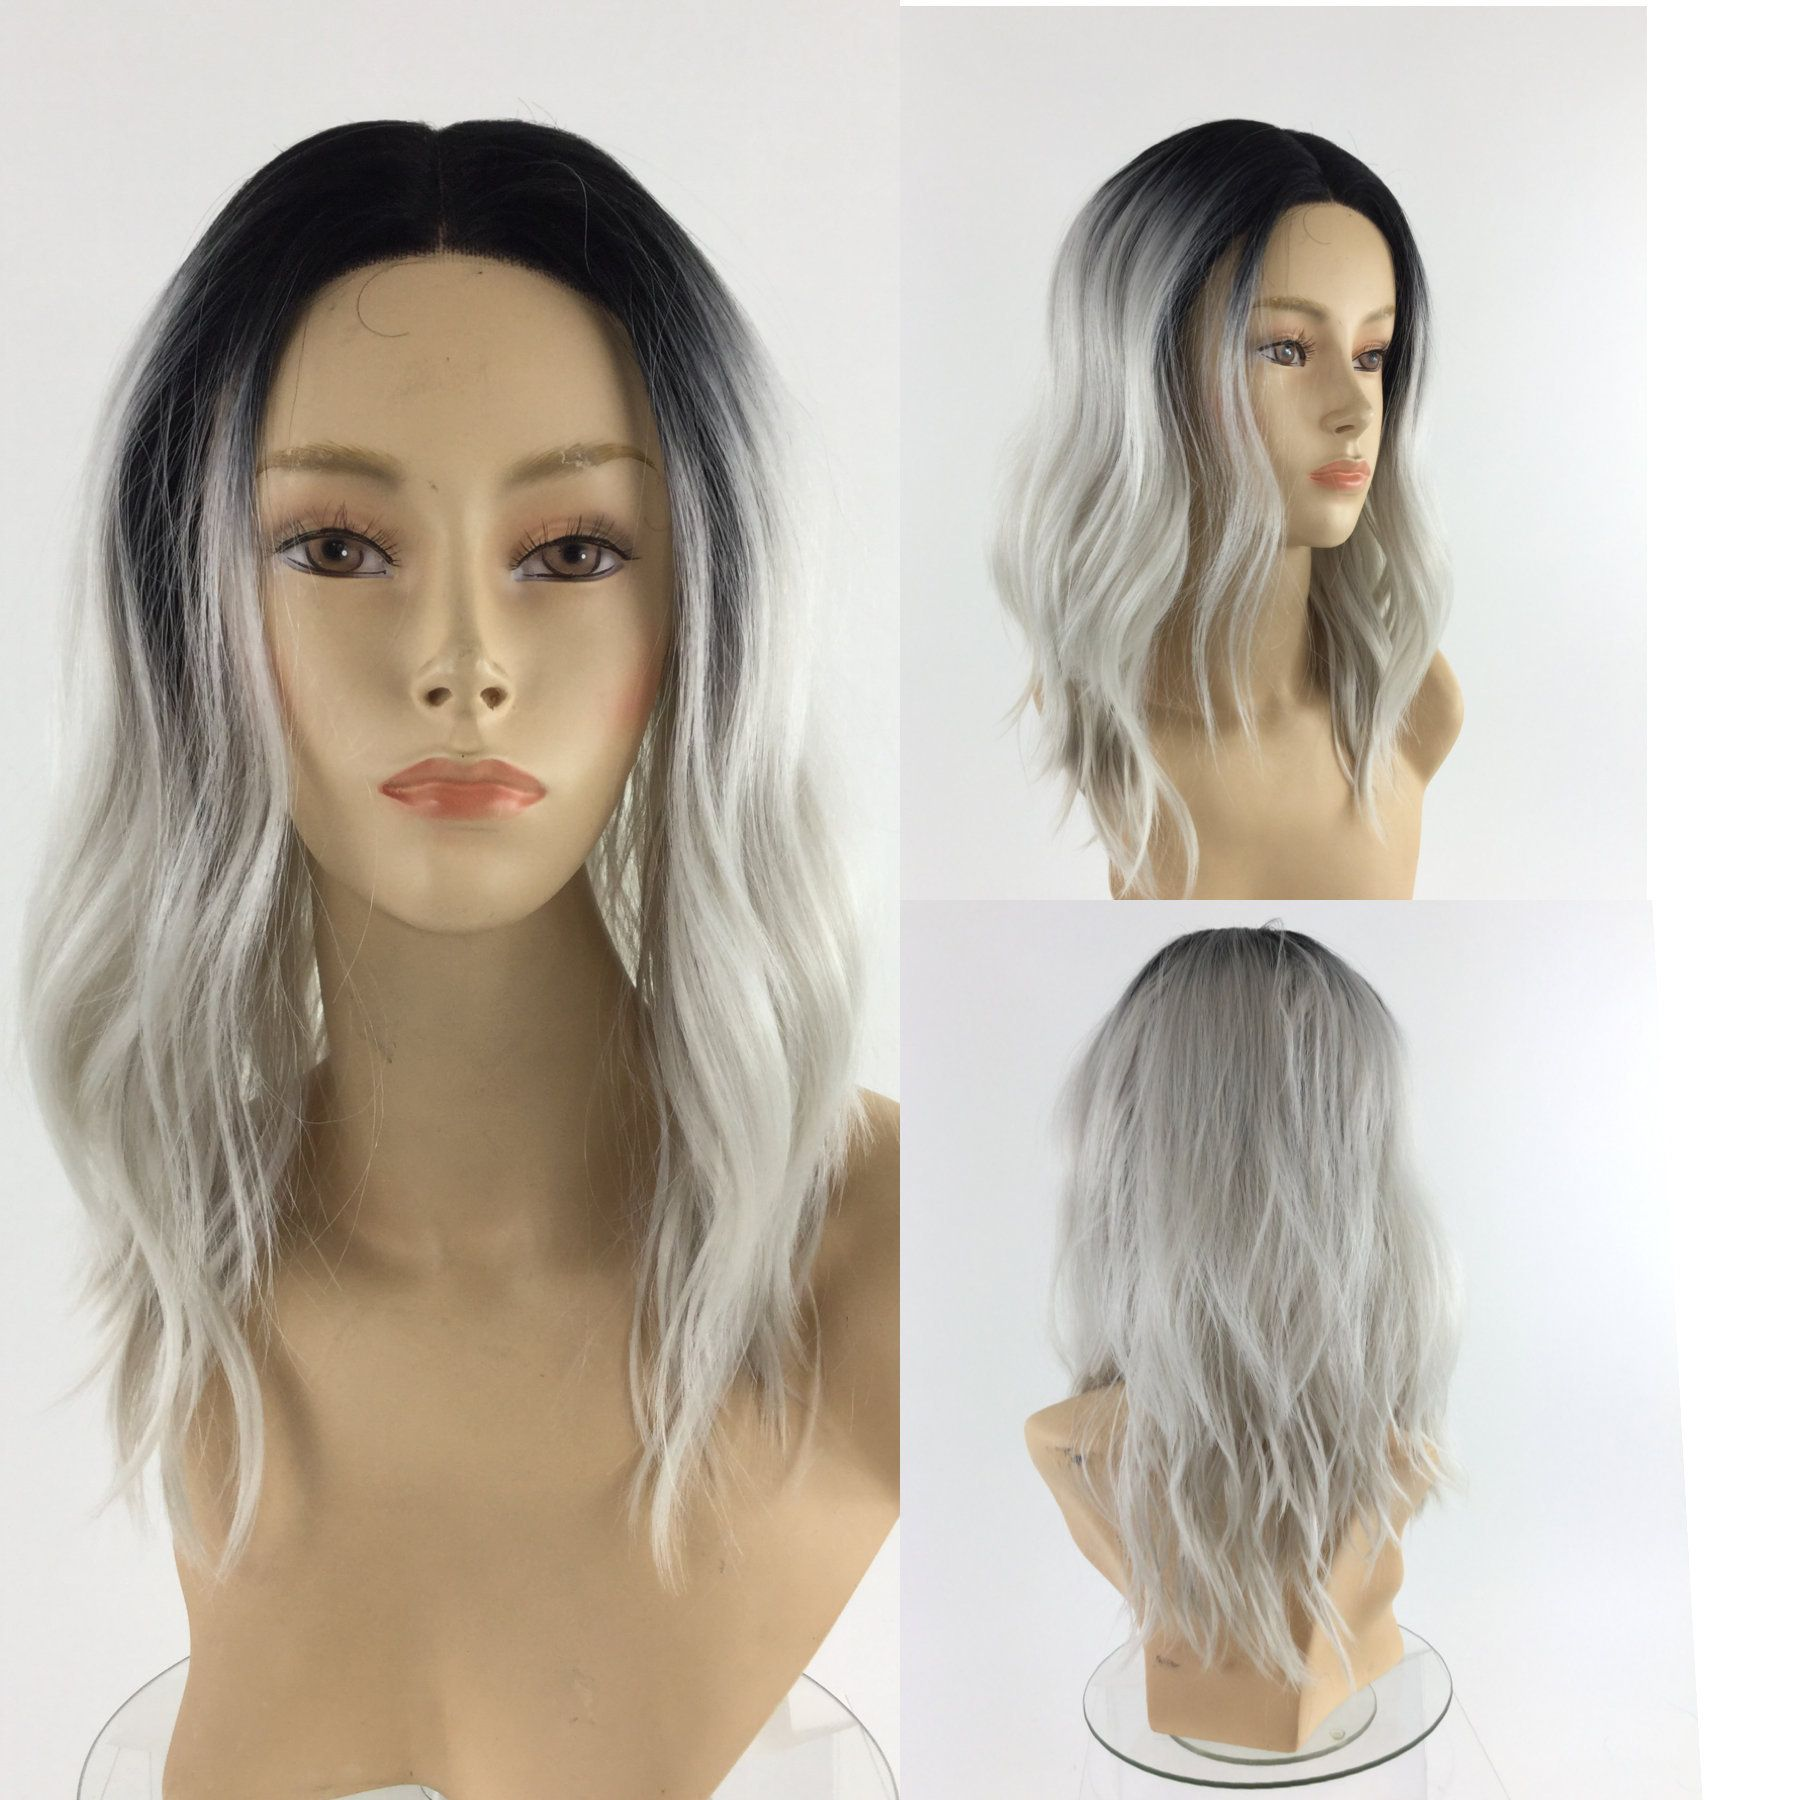 2021 New Lace Front Wigs Violet Wig Incredibles Get Yellow Out Of Gray Hair B12 Gray Hair